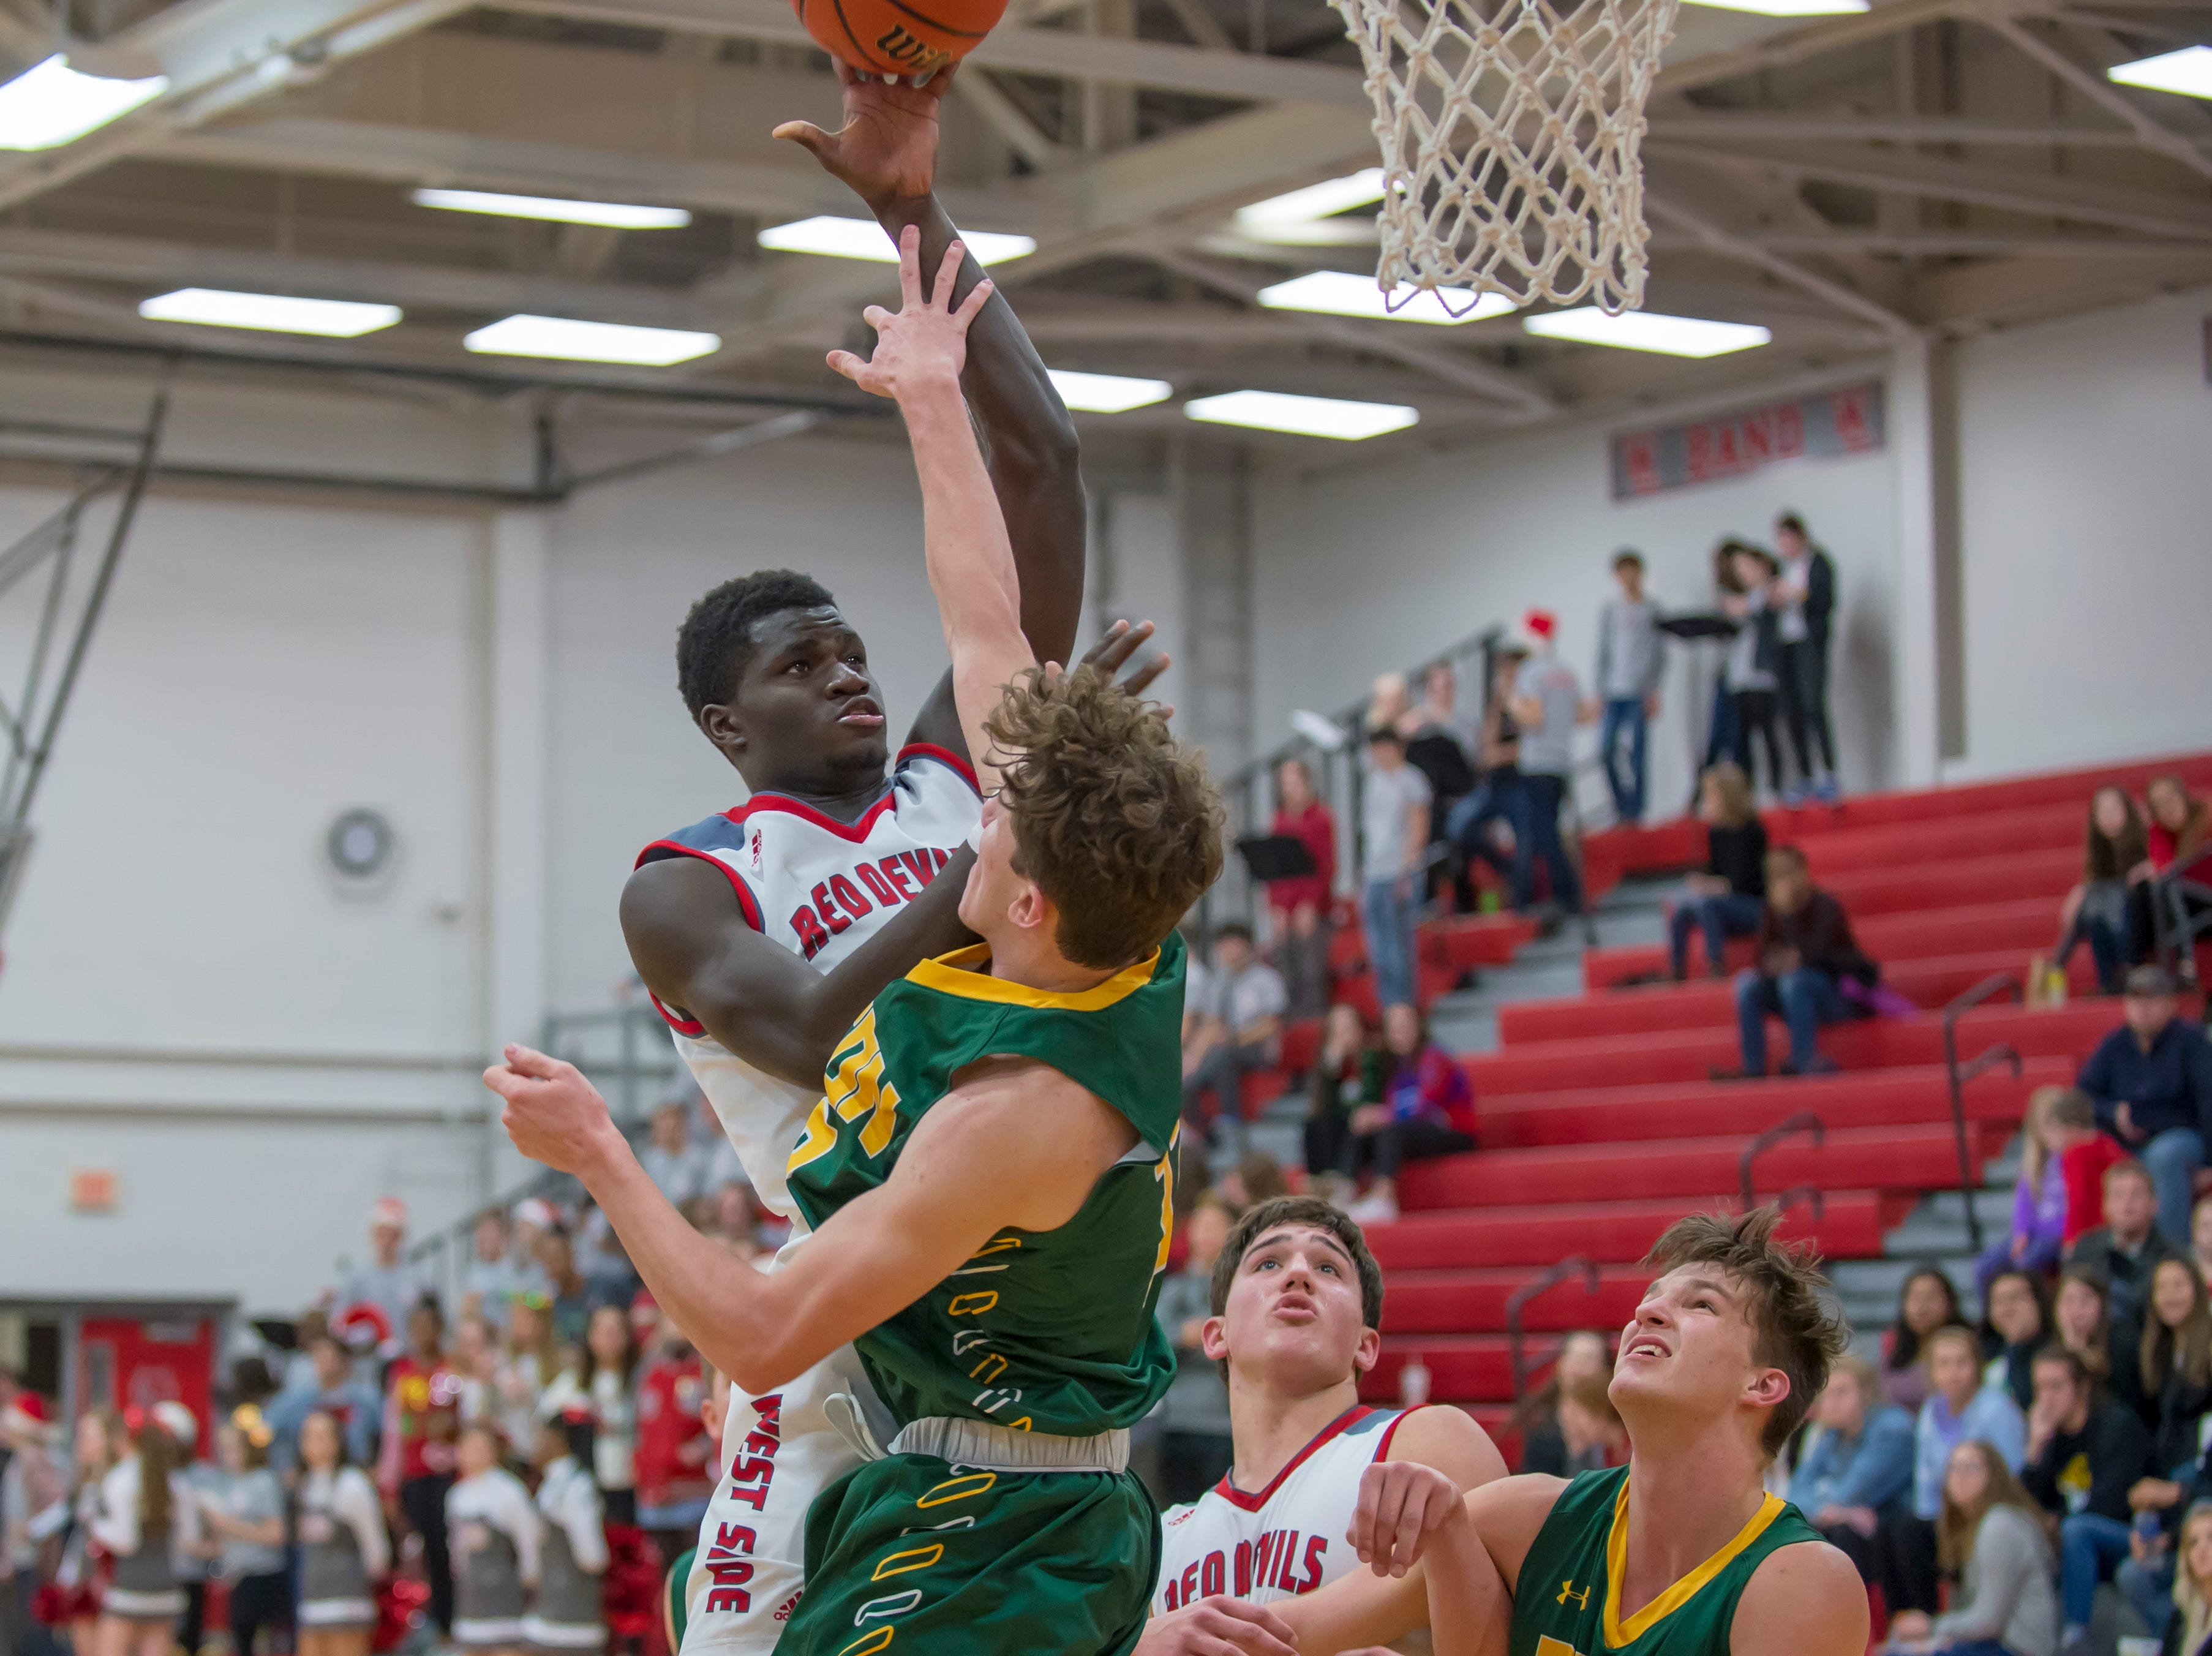 Action from the Benton Central at West Lafayette basketball game on December 14, 2018 - Nelson Mbongo